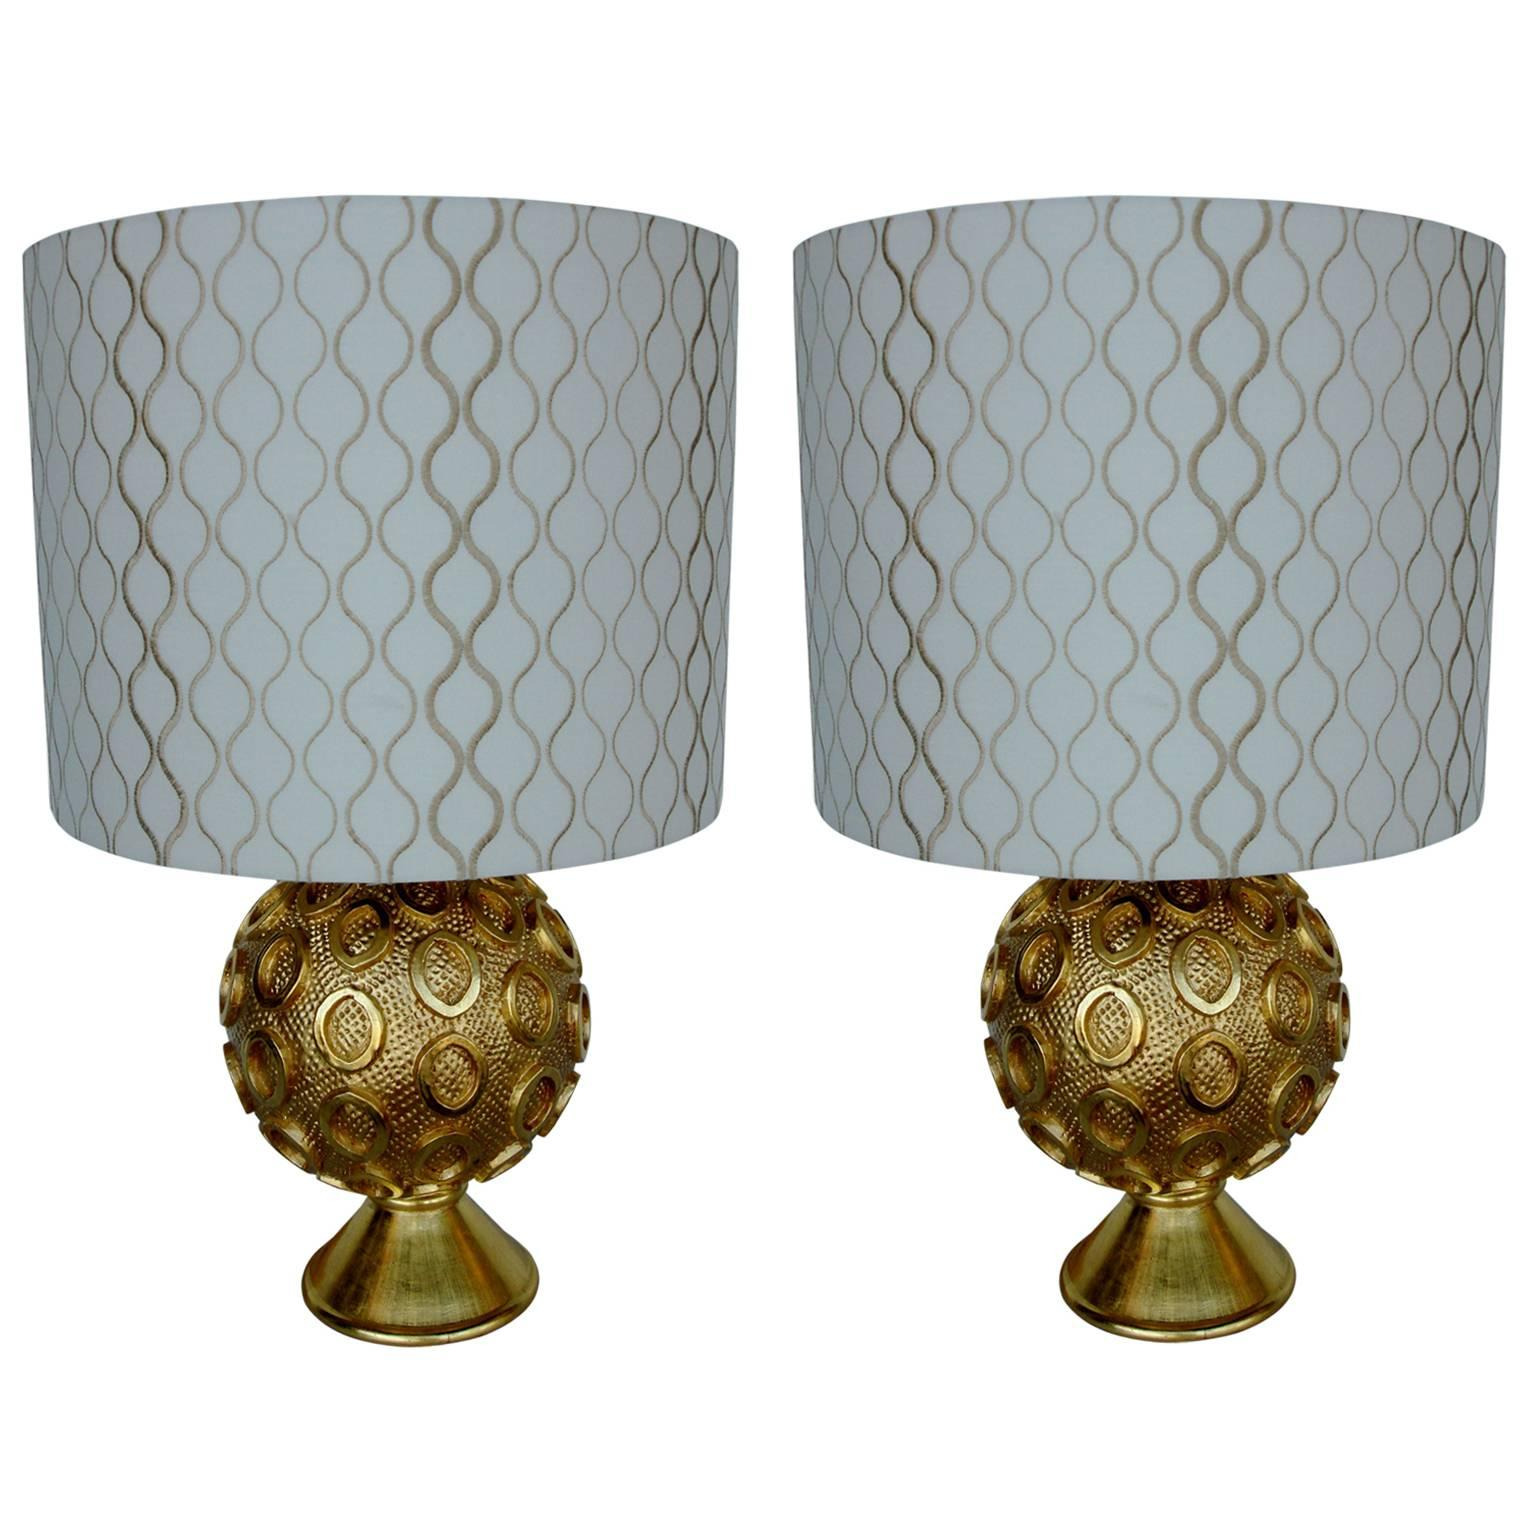 Pair of Perth Lamps by Bryan Cox